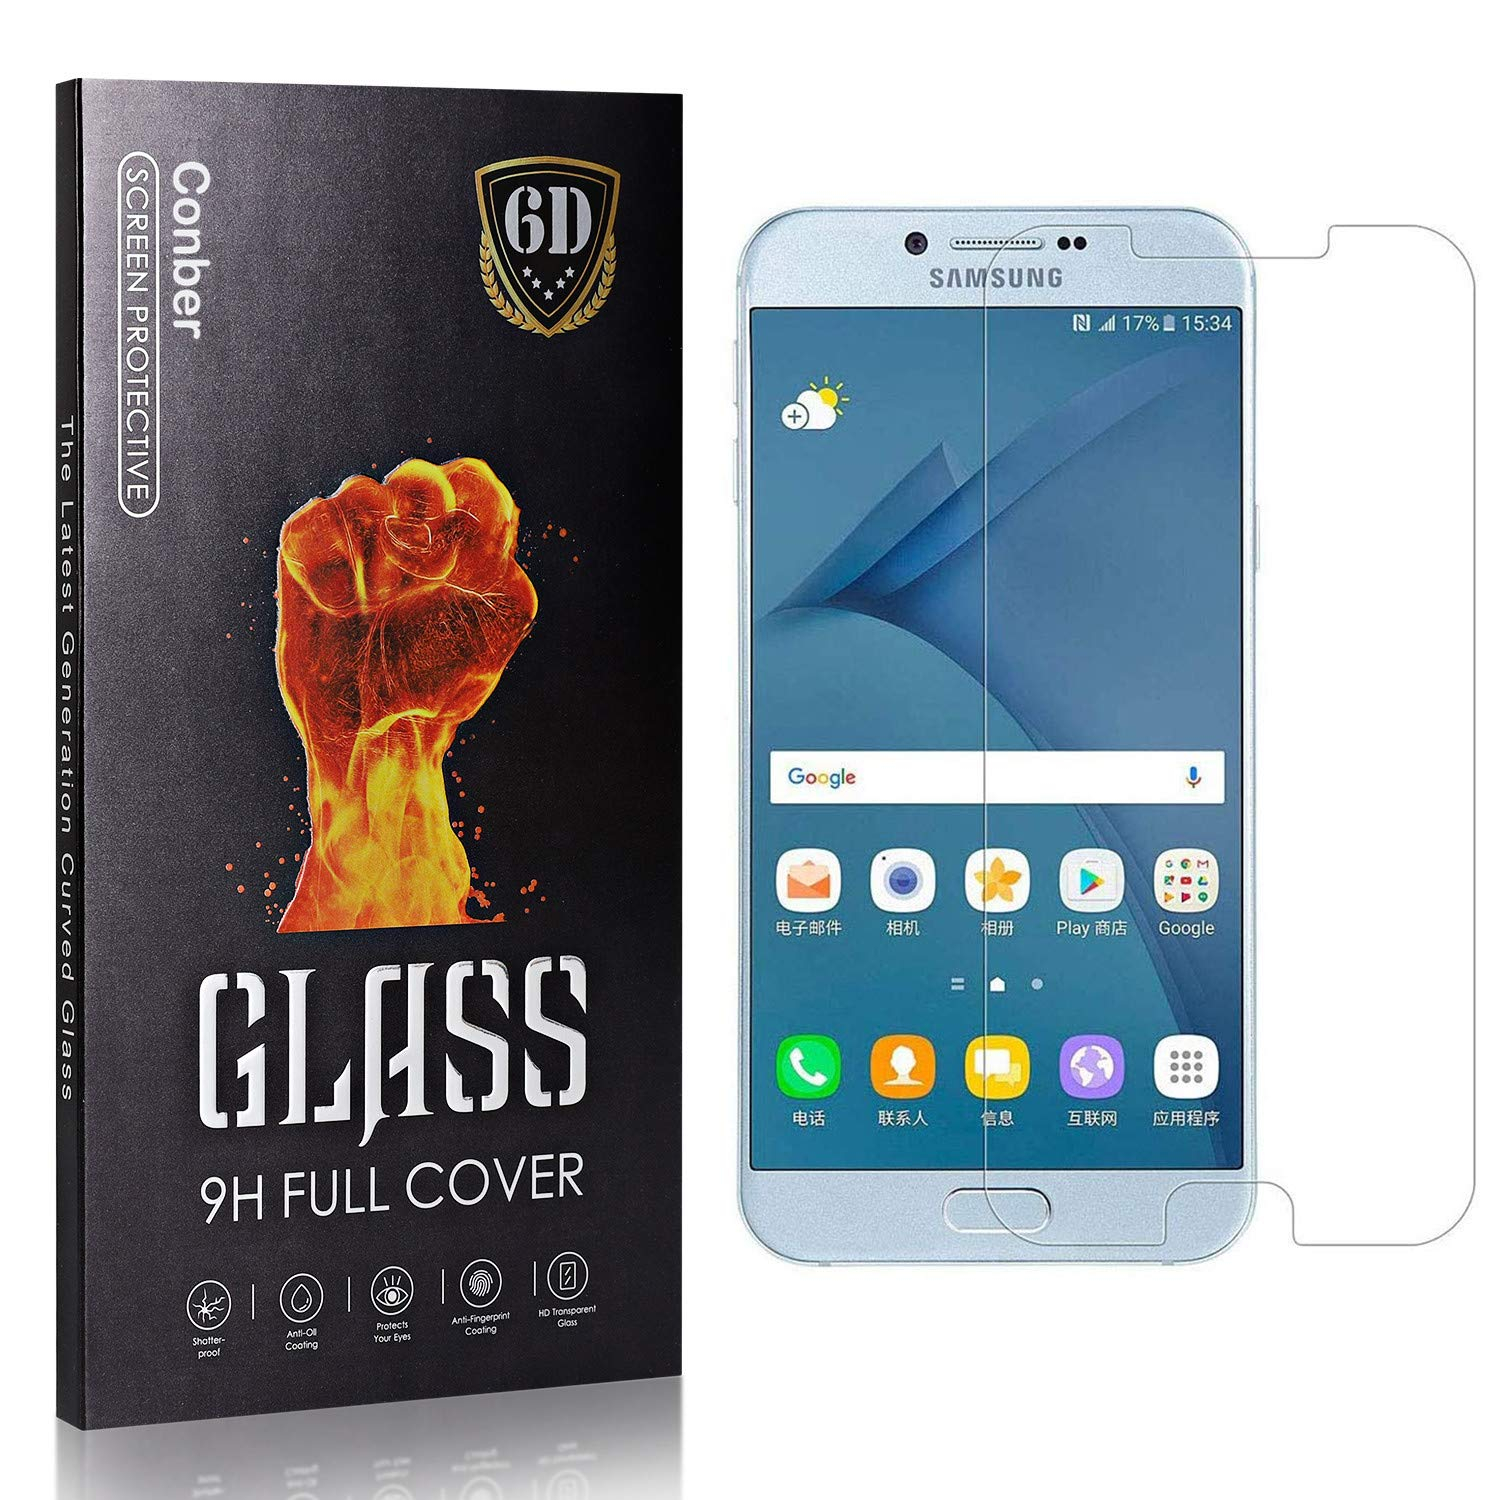 Conber 4 Pack Screen Detroit Mall Protector for Al sold out. Samsung A8 Galaxy Tem 2016